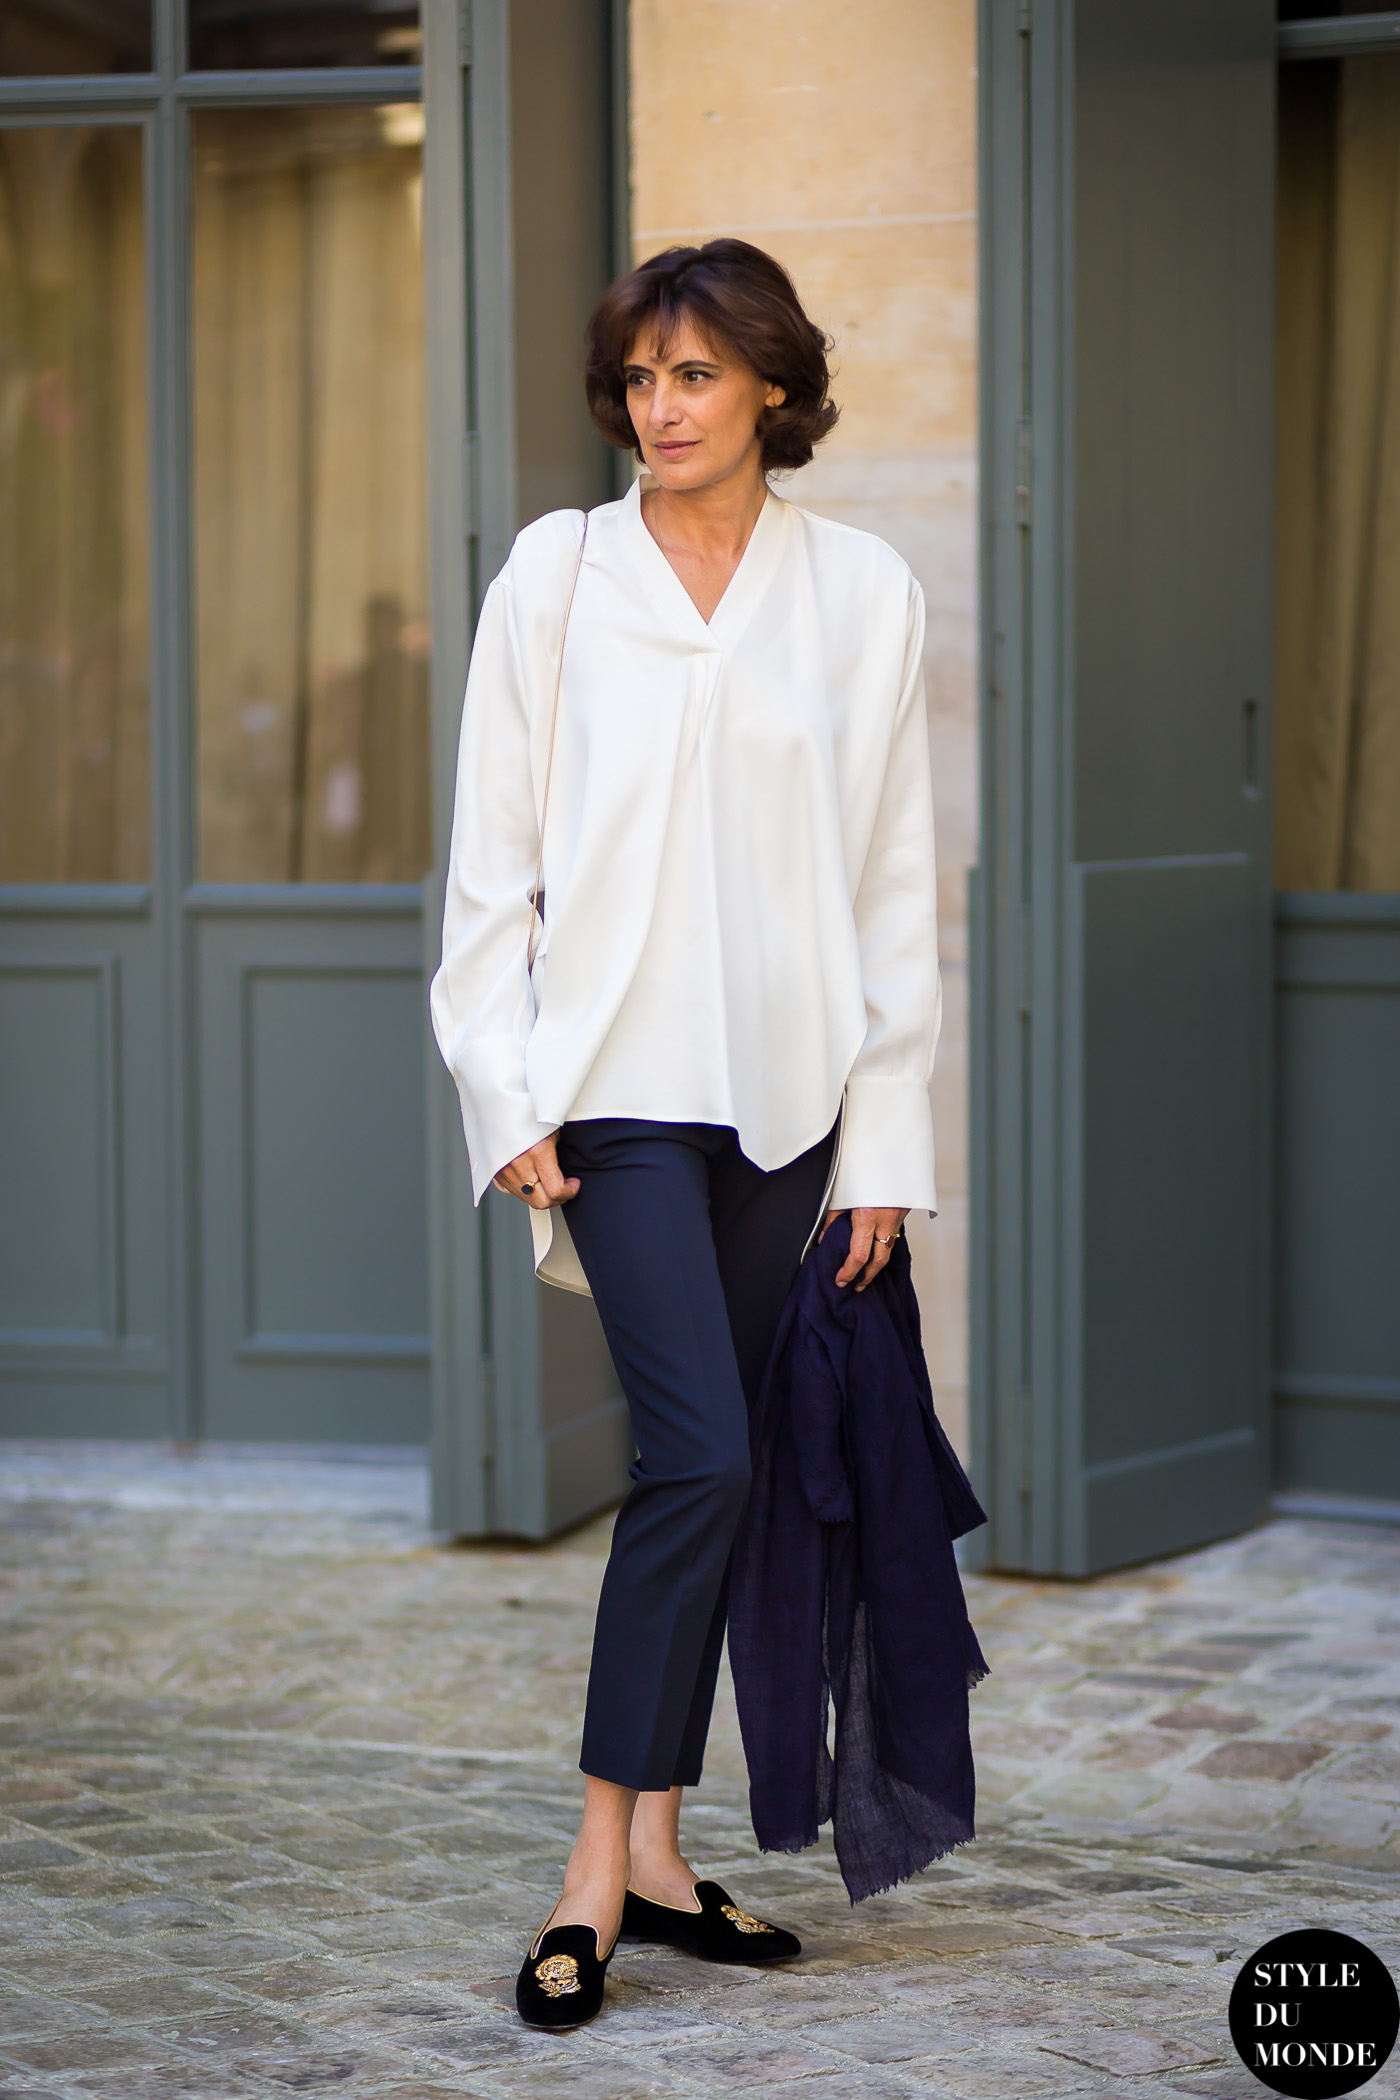 Ines de la Fressange Street Style Street Fashion by STYLEDUMONDE Street Style Fashion Blog